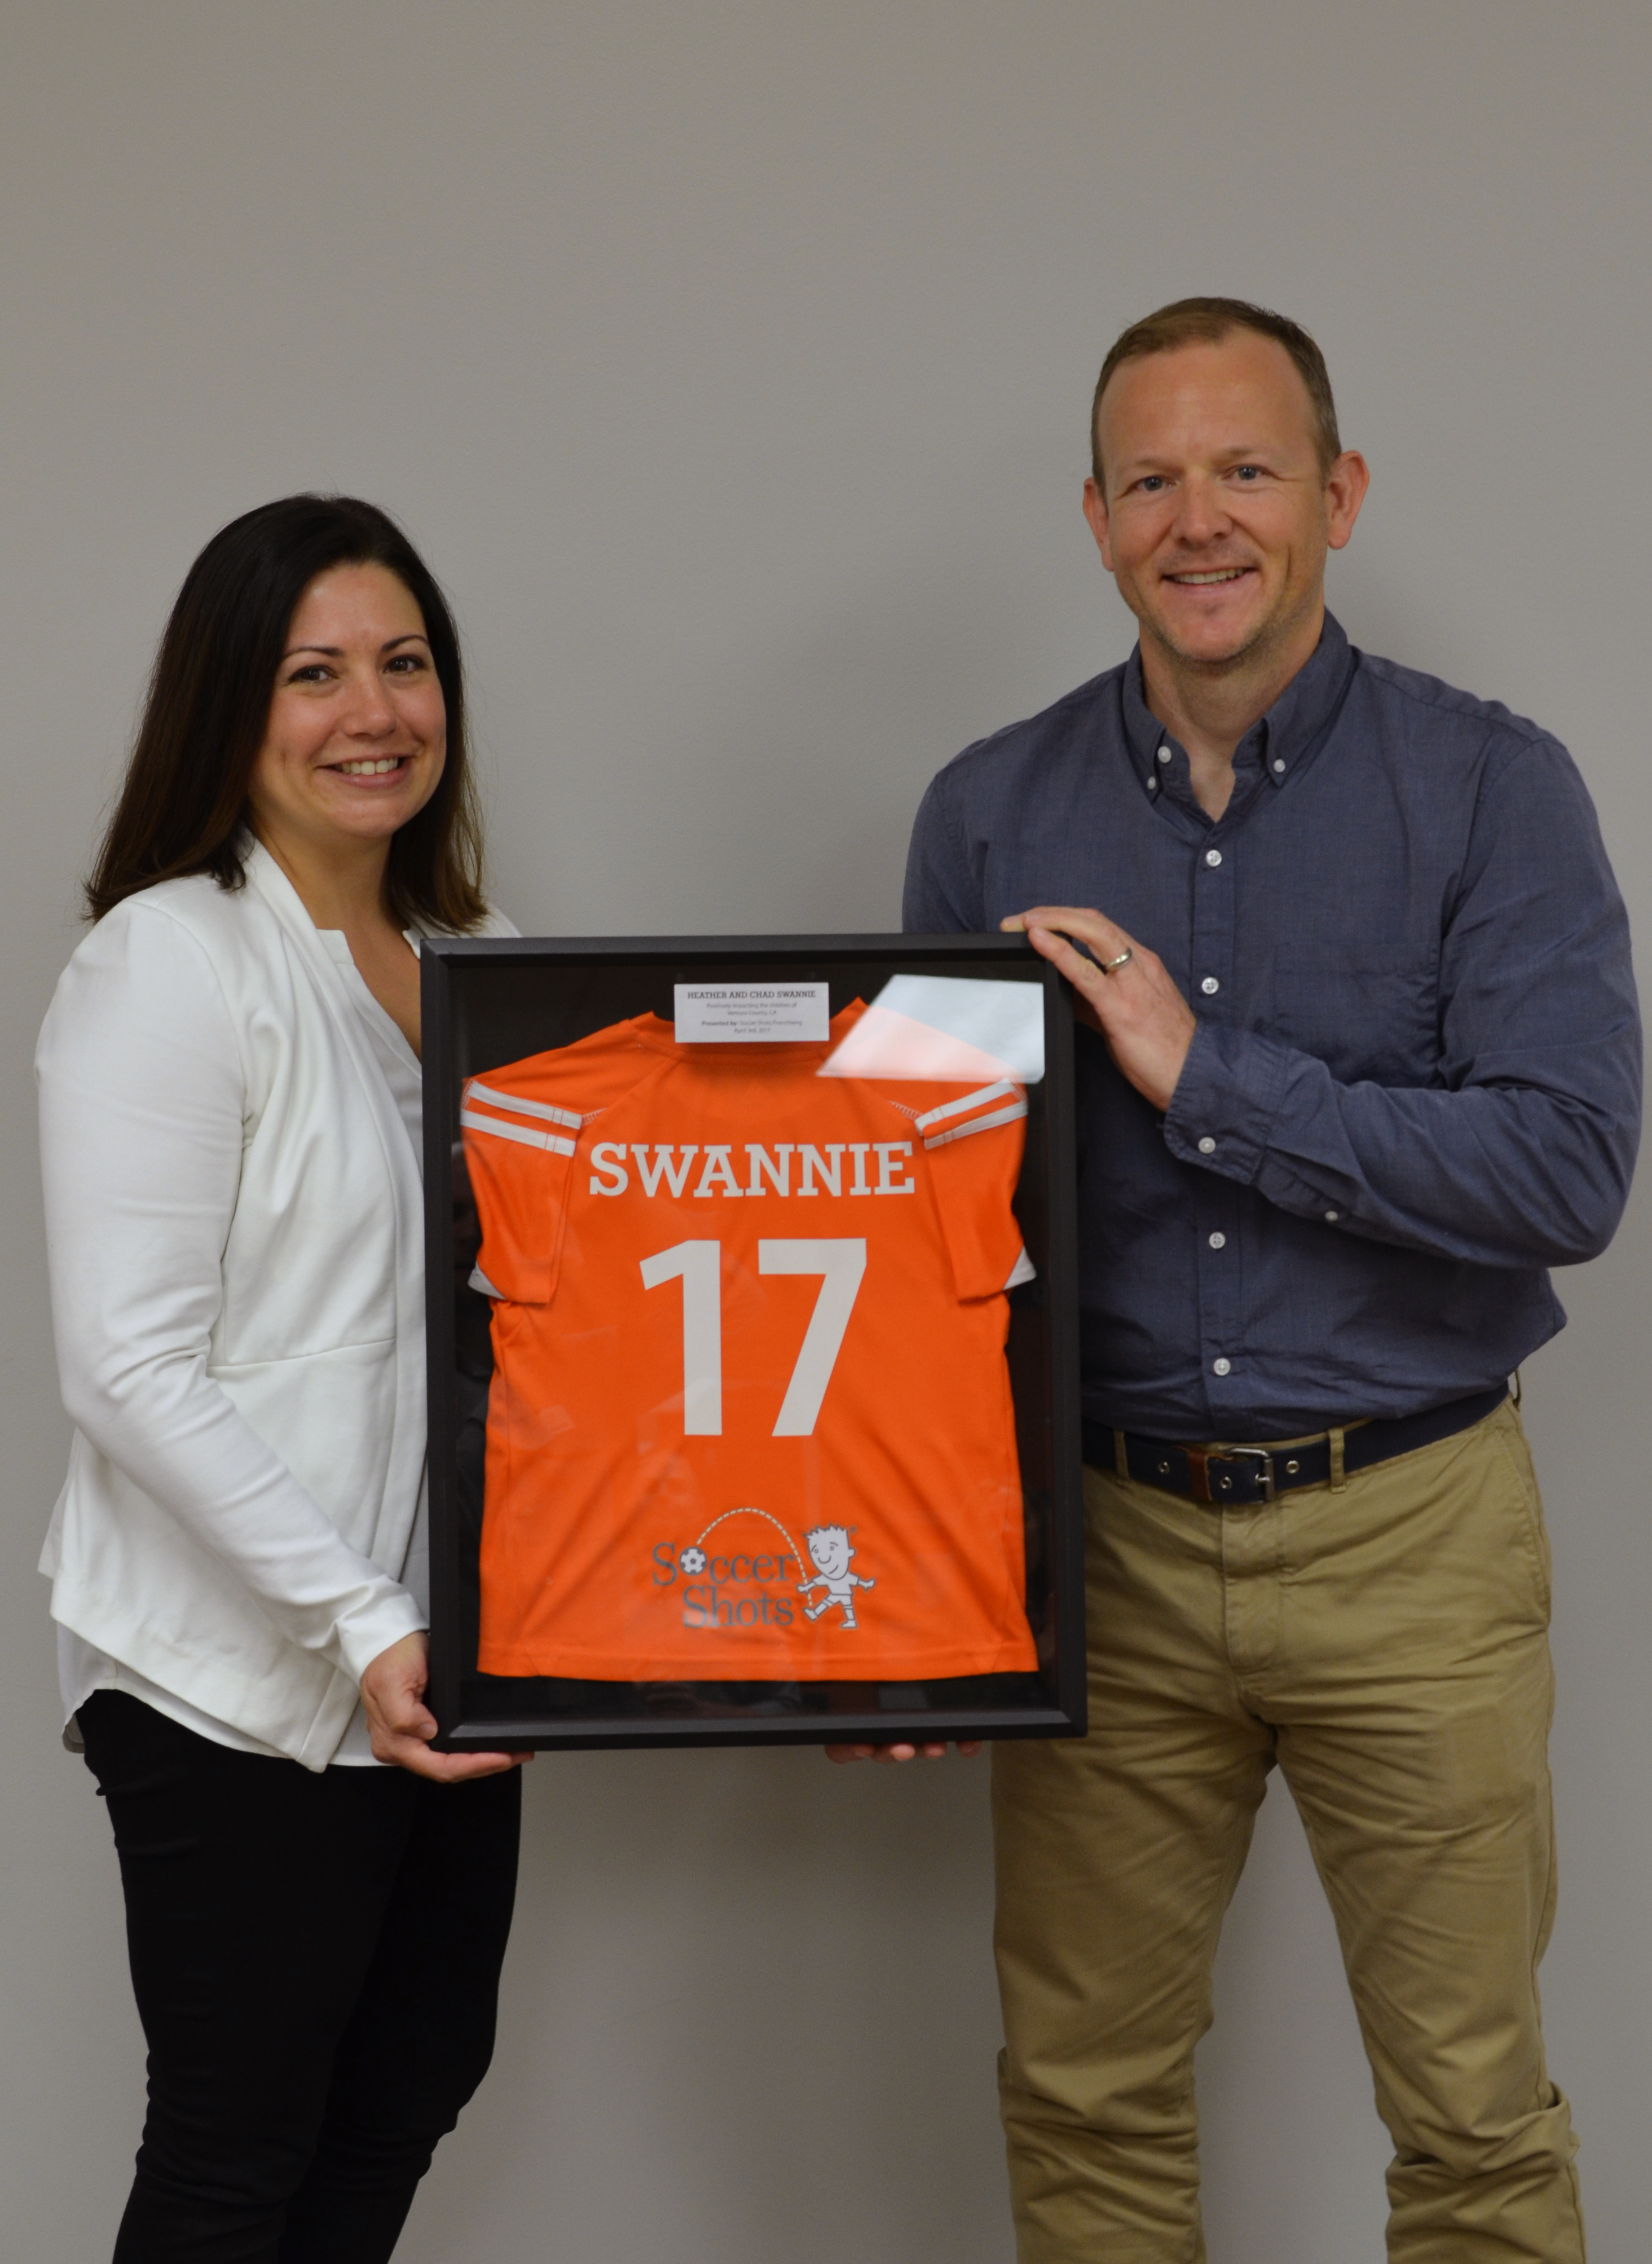 New franchisees - Swannies